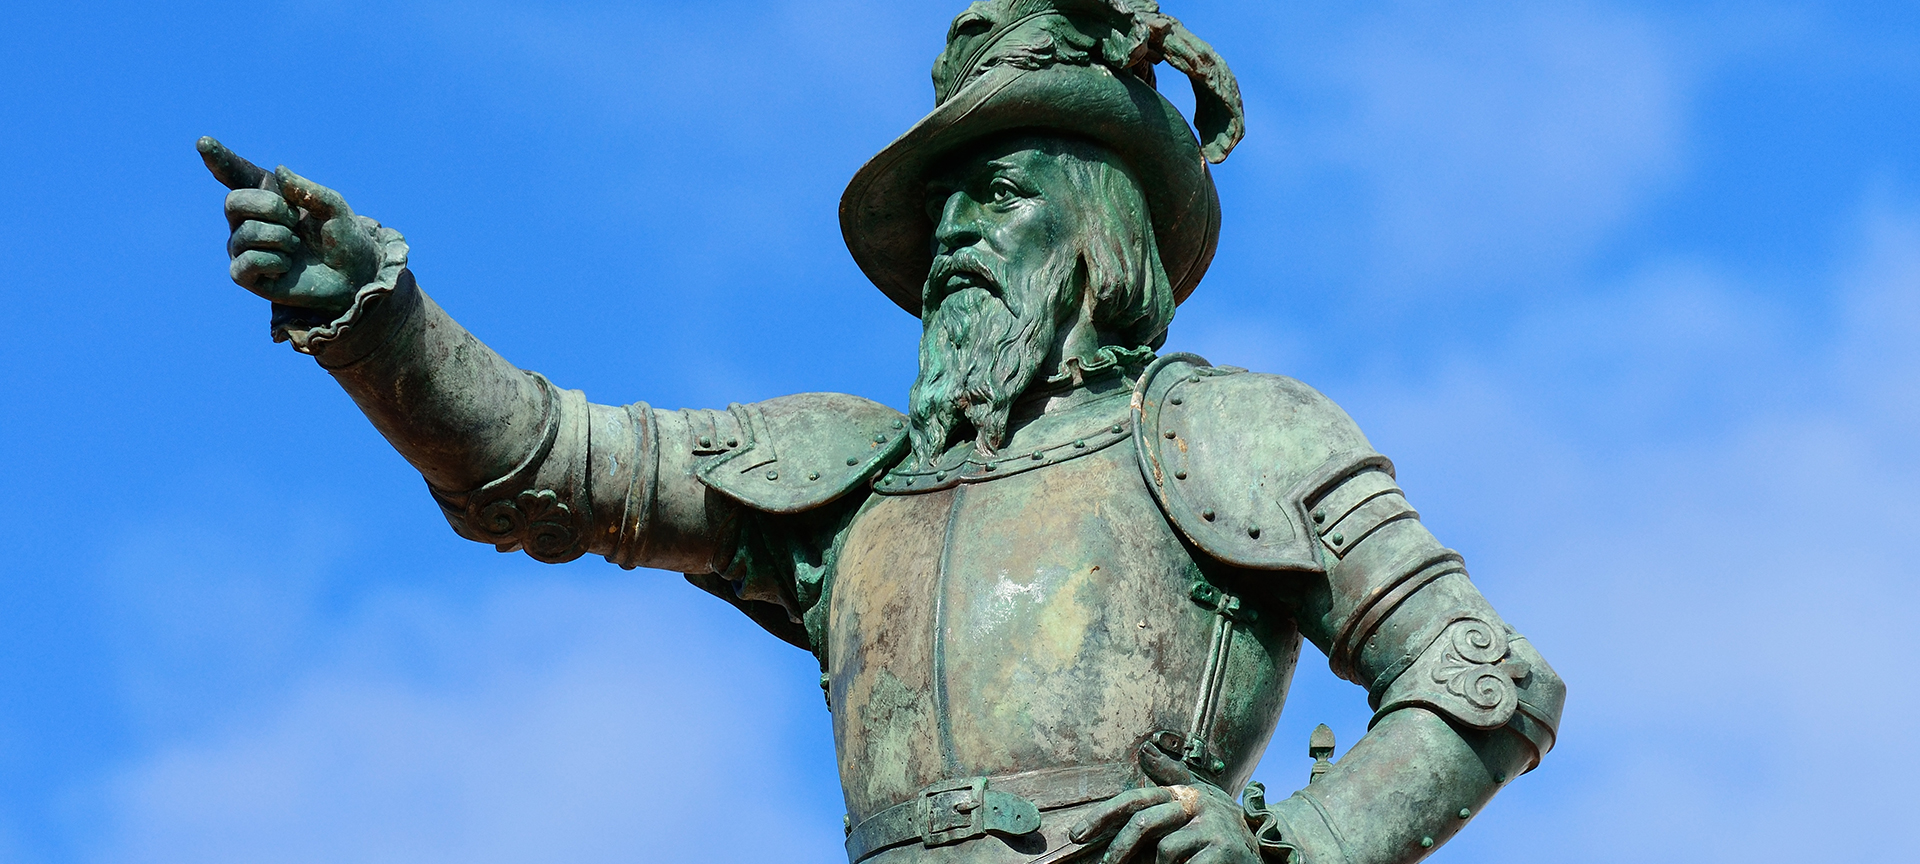 On 2nd April 2 1513, Spanish explorer Juan Ponce de Leon and his crew sailed three ships north along the coast of present day Northeast Florida. Ponce de Leon planned to claim the land for Spain, and he looked for a good place to anchor so they could go ashore. At noon, his navigator Anton de Alaminos used an astrolabe, the most advanced equipment then available, to take a reading of their location. It was